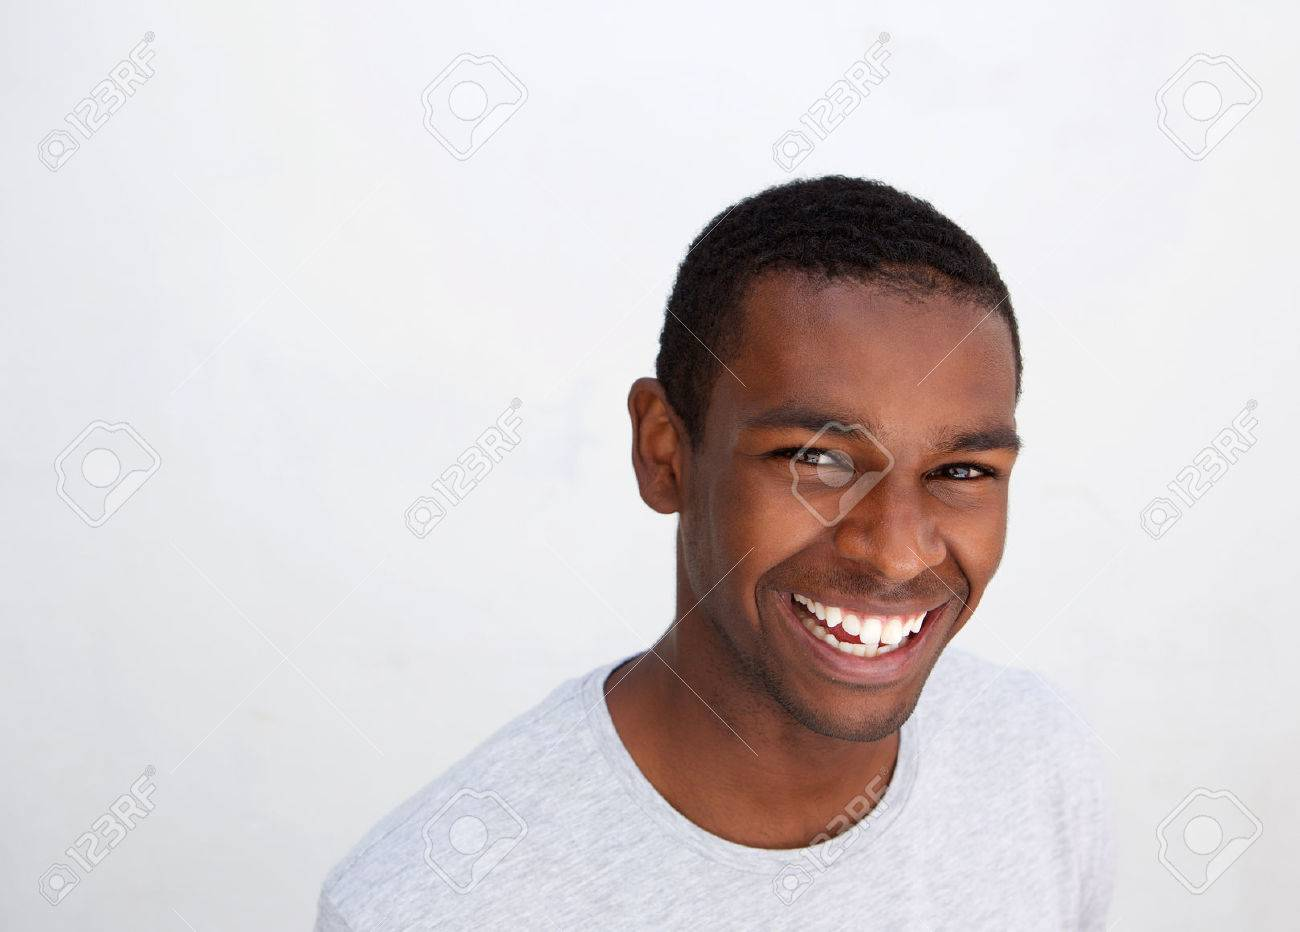 close up portrait of a laughing black guy posing against white